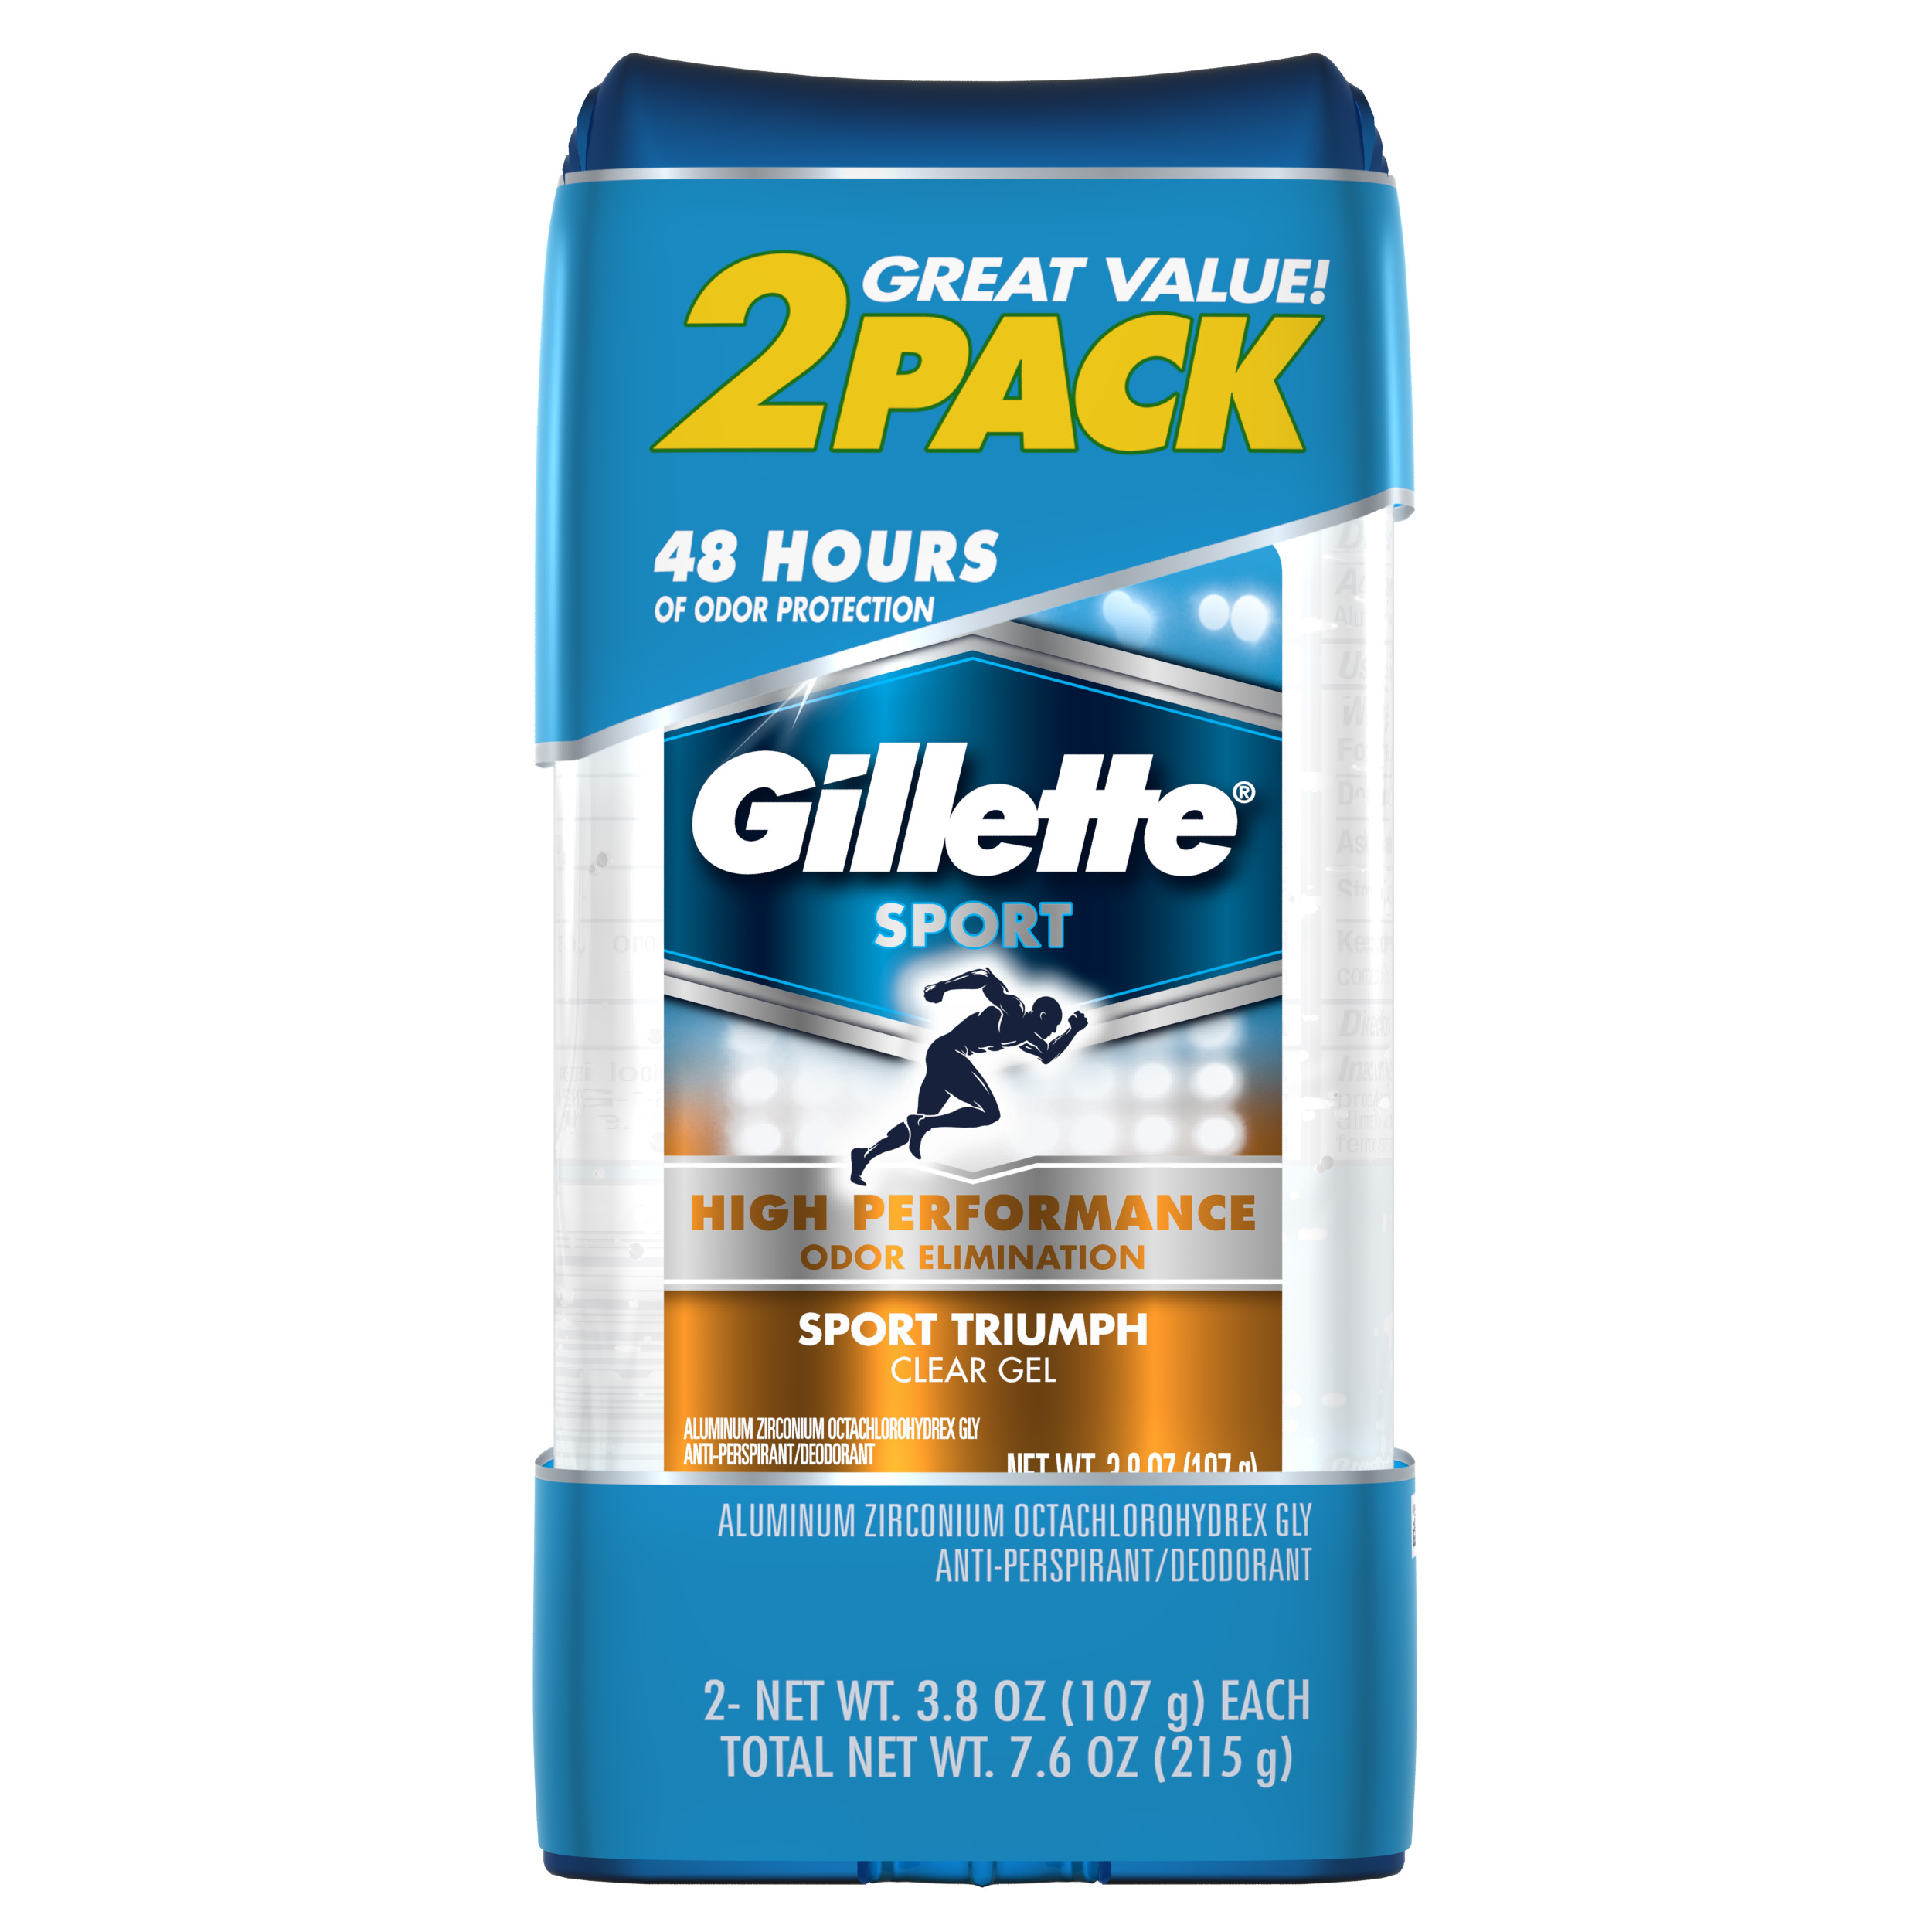 Gillette Clear Gel Sport Triumph Antiperspirant and Deodorant 2 count 3.8 oz